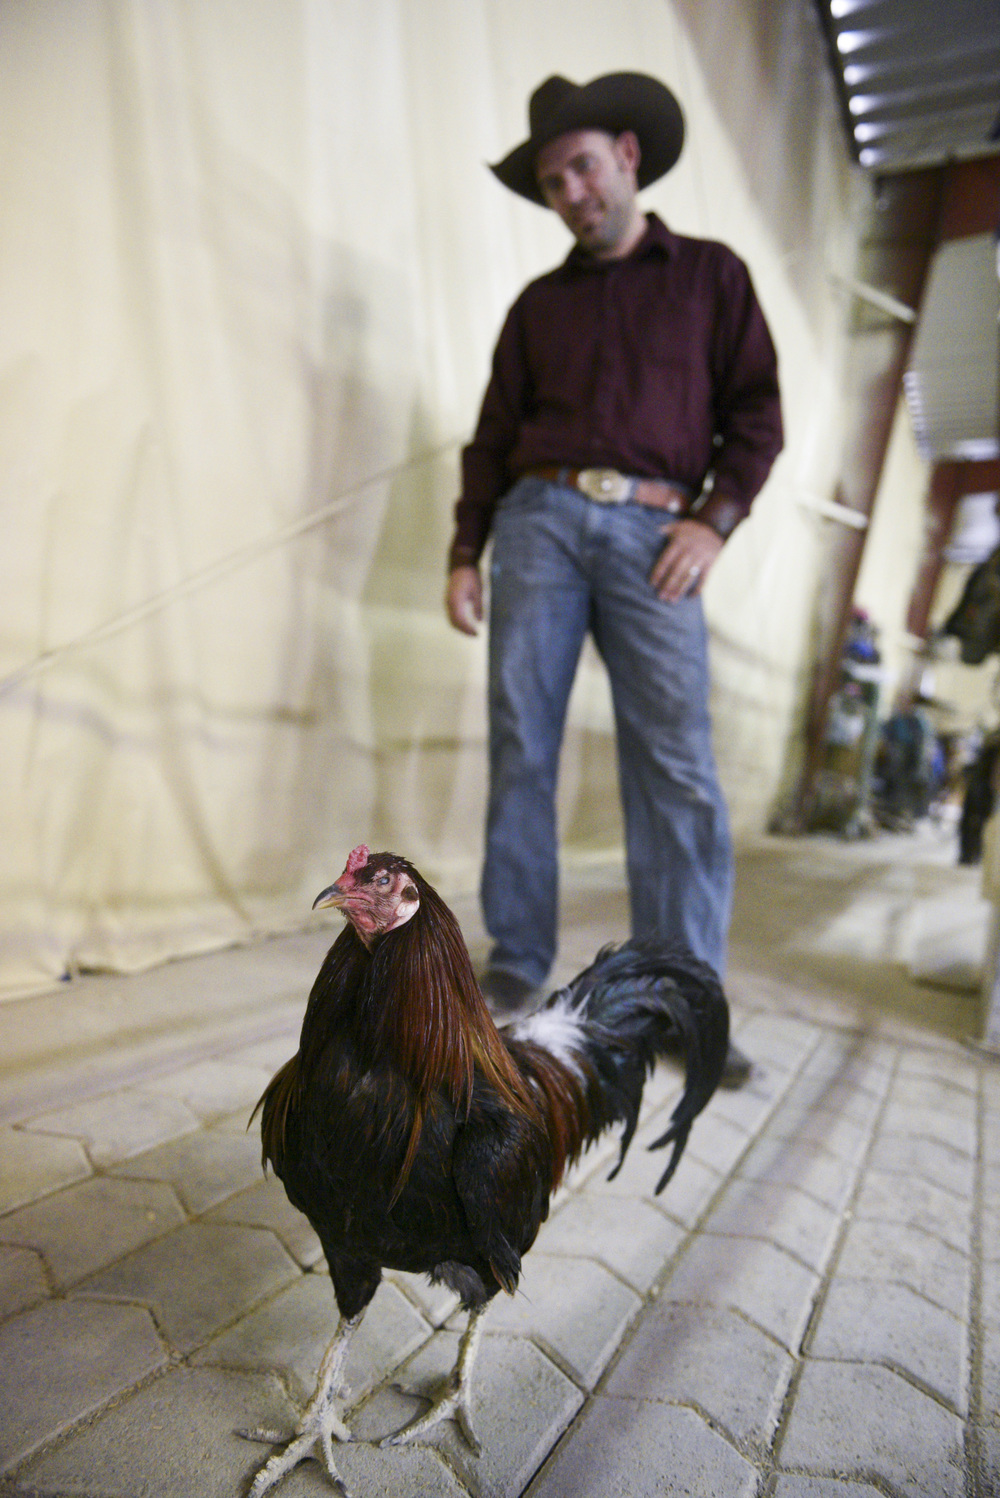 Paul Rogers, owner of Las Vegas' Paradise Ranch, poses with rescue rooster, Captain Hook, who lost his left eye as the result of being exploited as a fighting cock. Monday, June 1, 2015. (Jason Ogulnik/Las Vegas Review-Journal)